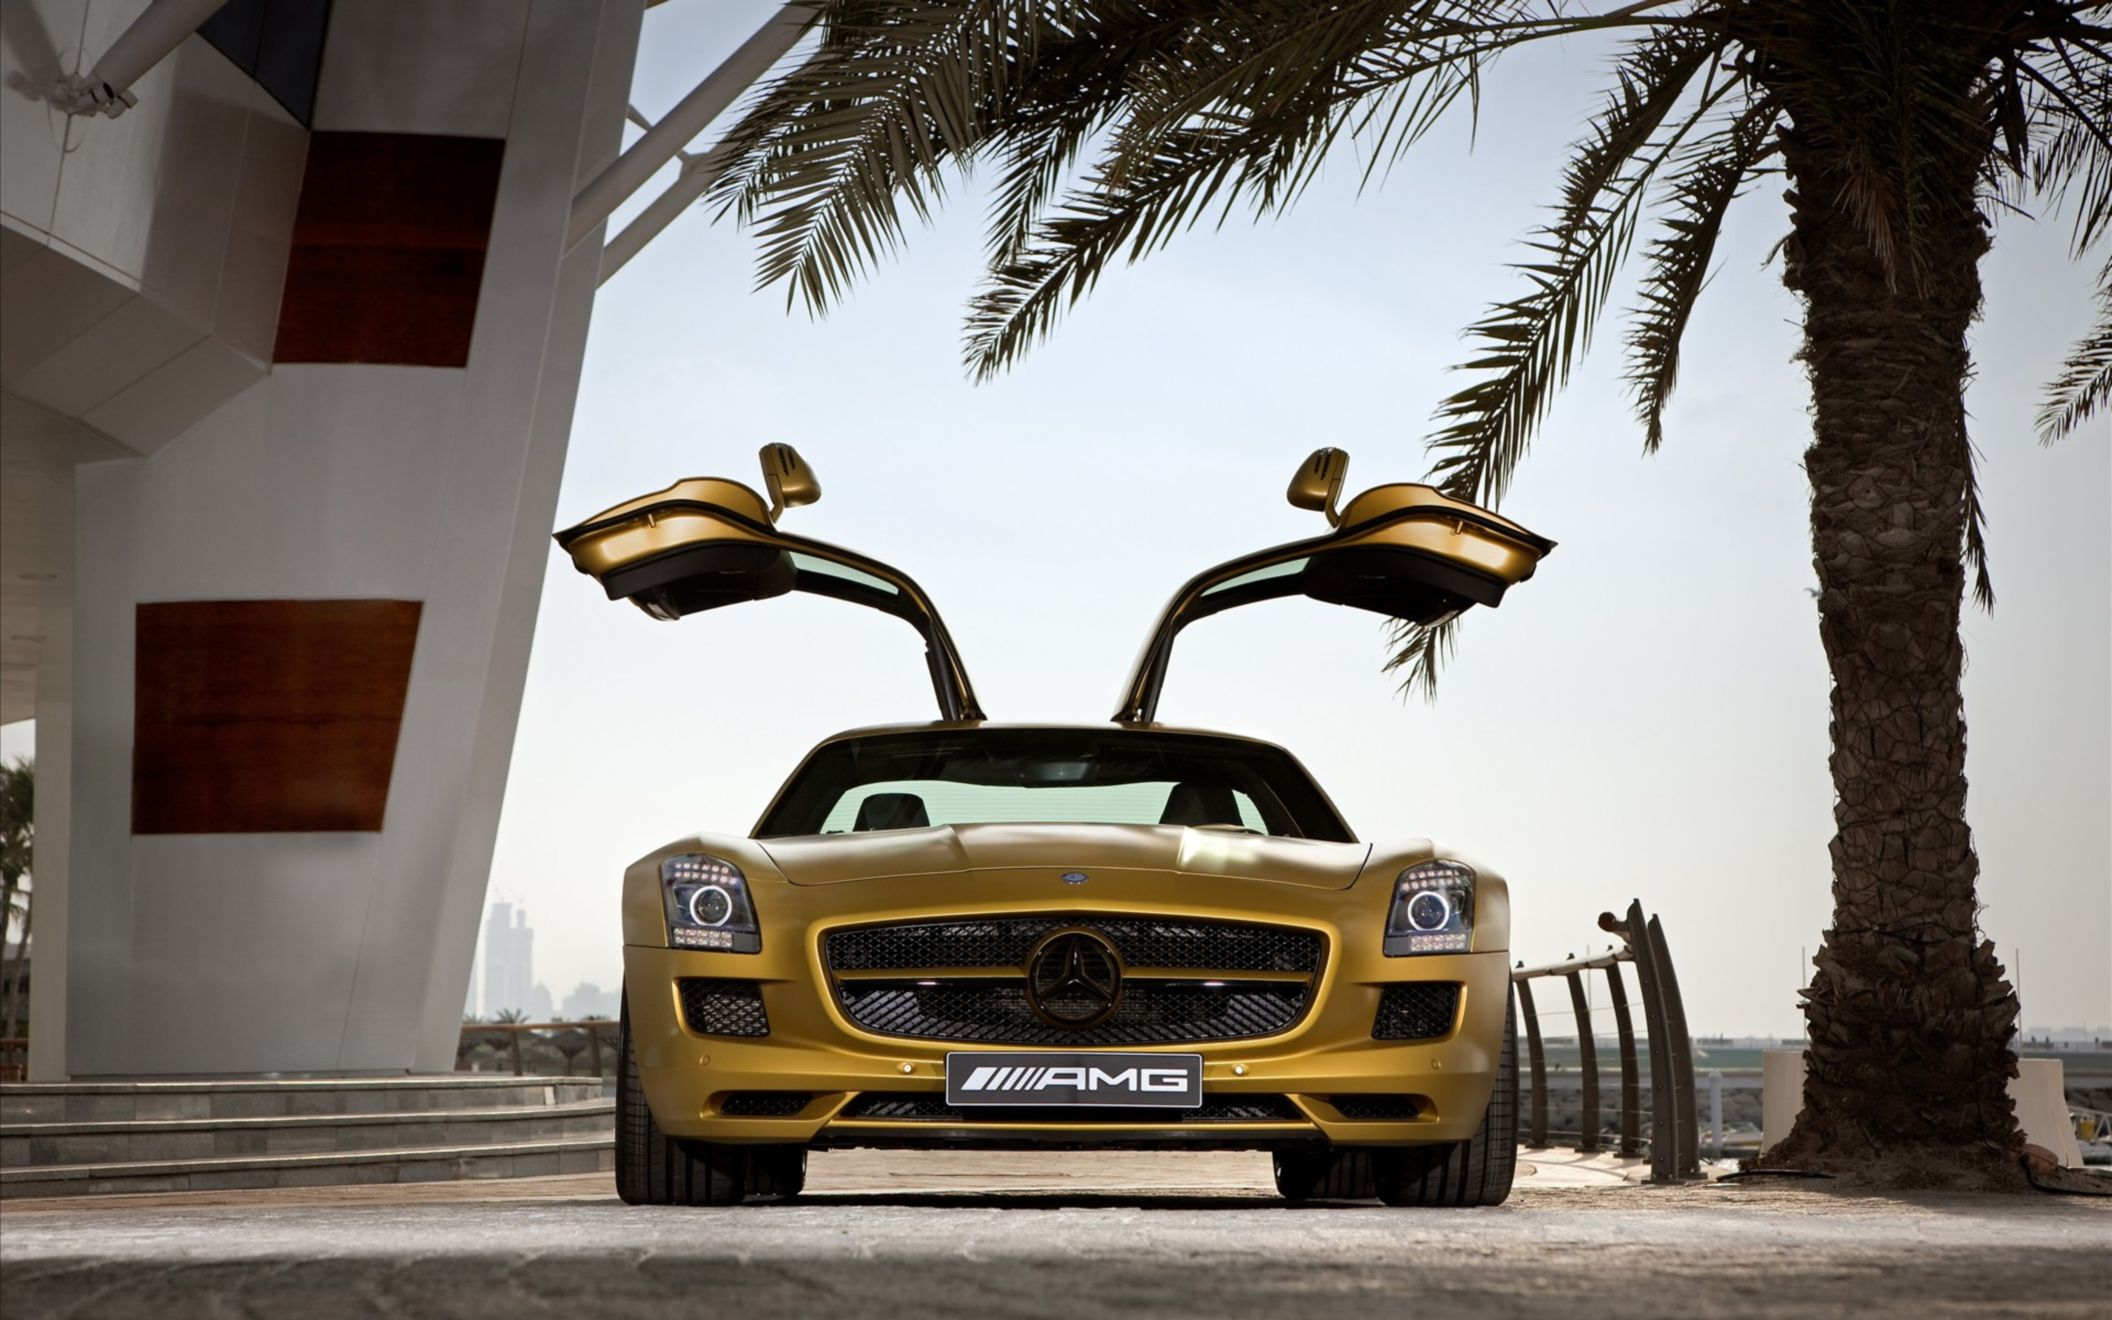 Download free HD 2010 Mercedes Benz Sls Amg Desert Gold 2 Wide Wallpaper, image